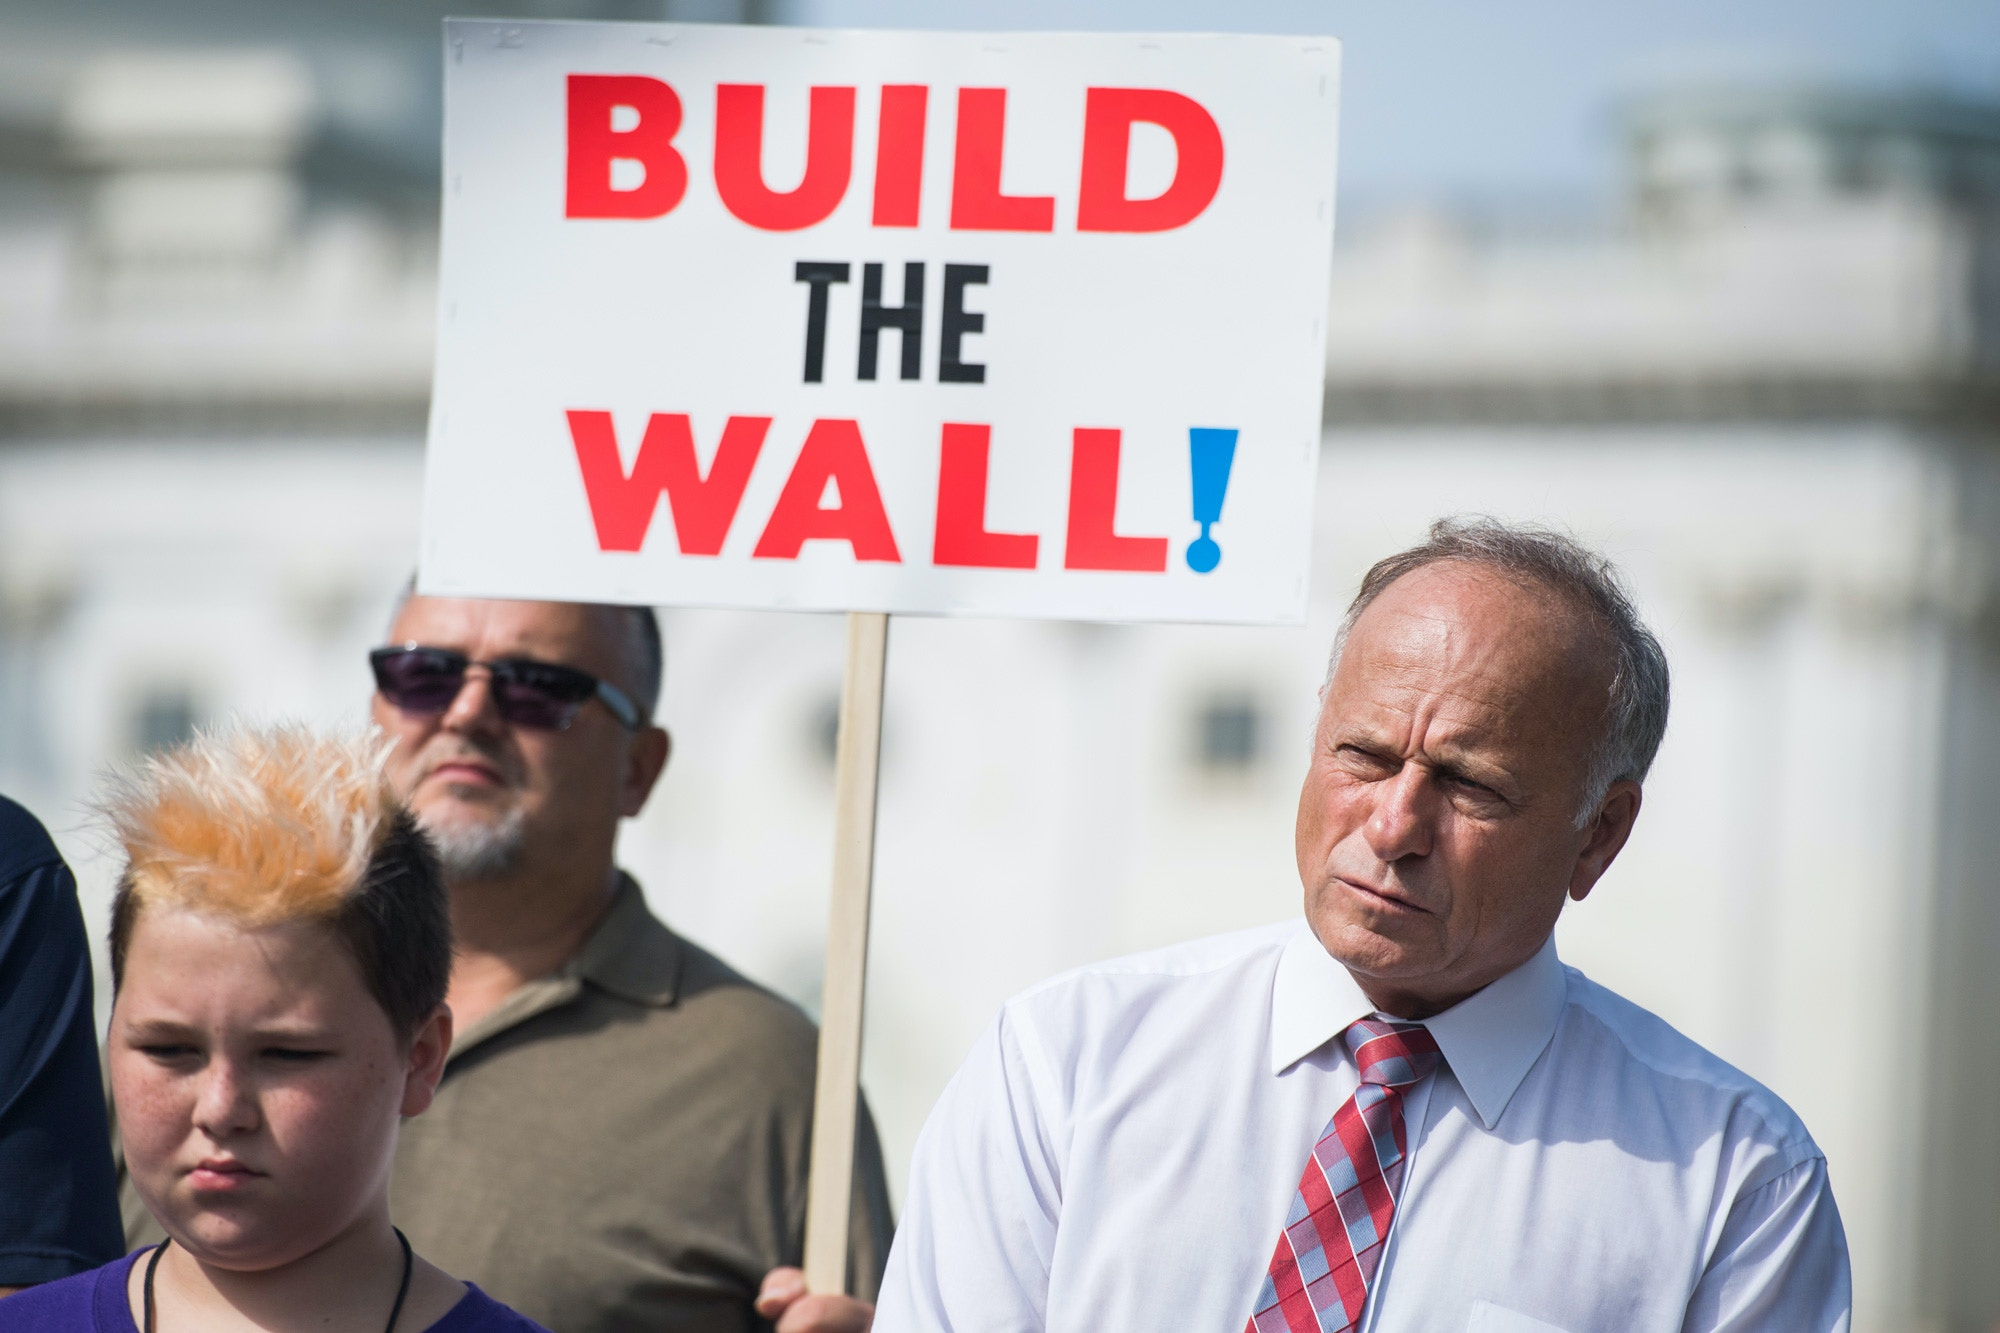 UNITED STATES - SEPTEMBER 07: Rep. Steve King, R-Iowa, attends a rally with Angel Families on the East Front of the Capitol, to highlight crimes committed by illegal immigrants in the U.S., on September 7, 2018. (Photo By Tom Williams/CQ Roll Call) (CQ Roll Call via AP Images)